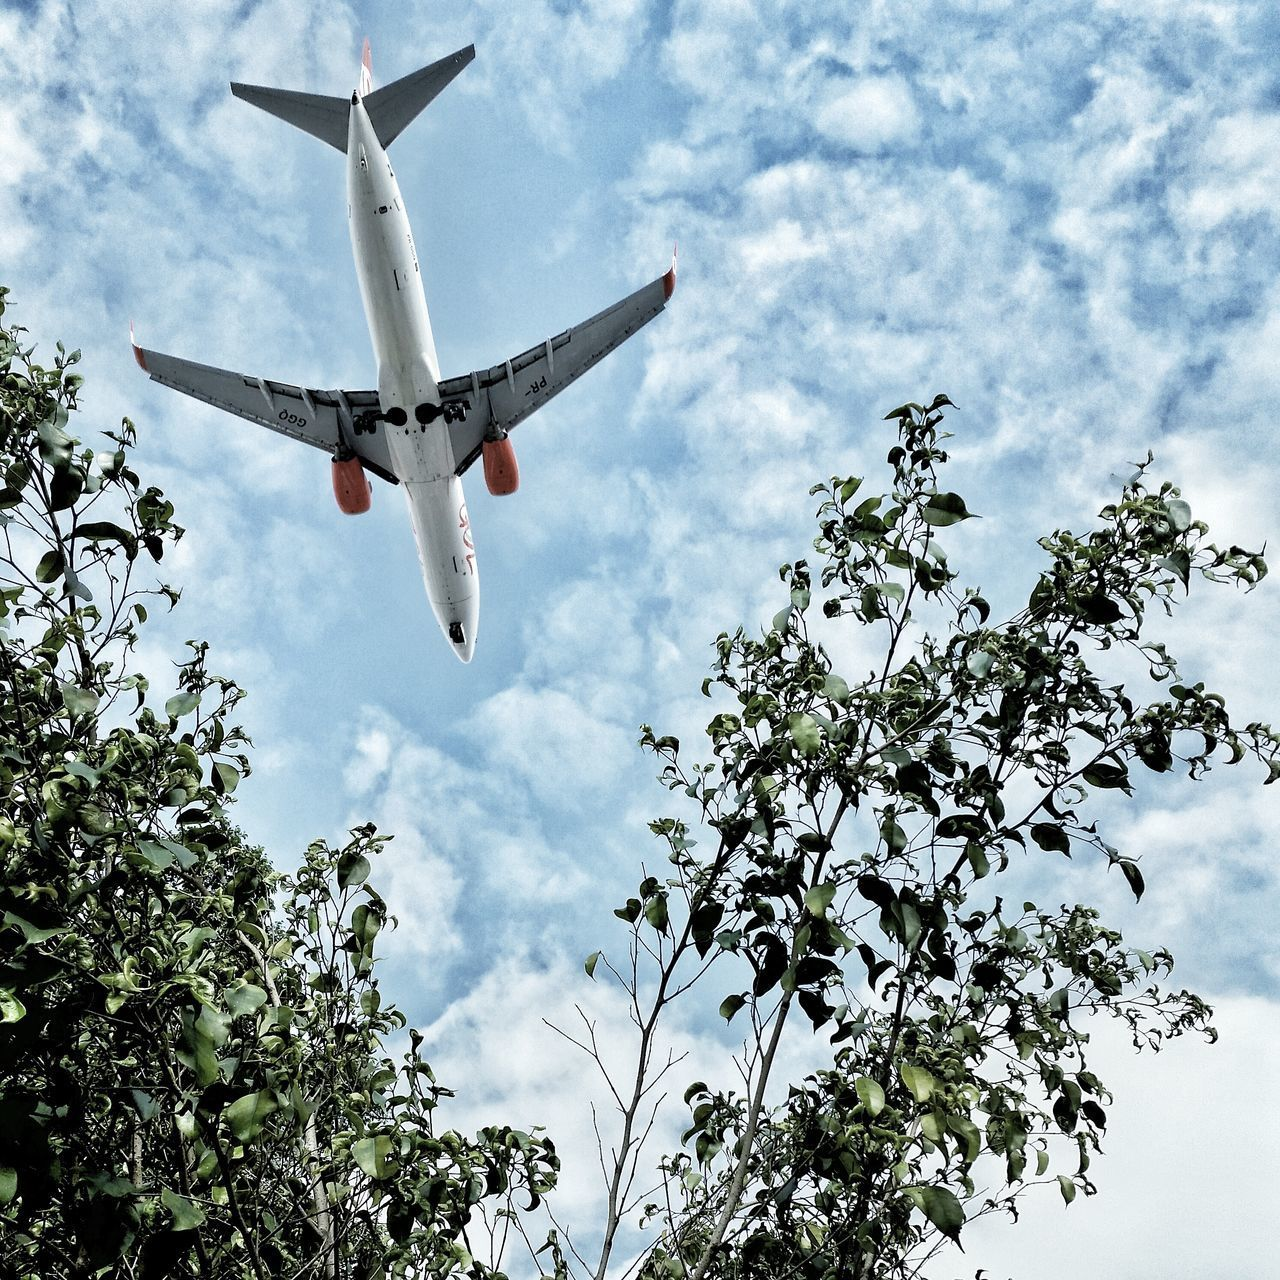 airplane, flying, sky, low angle view, journey, transportation, cloud - sky, travel, tree, no people, day, growth, nature, outdoors